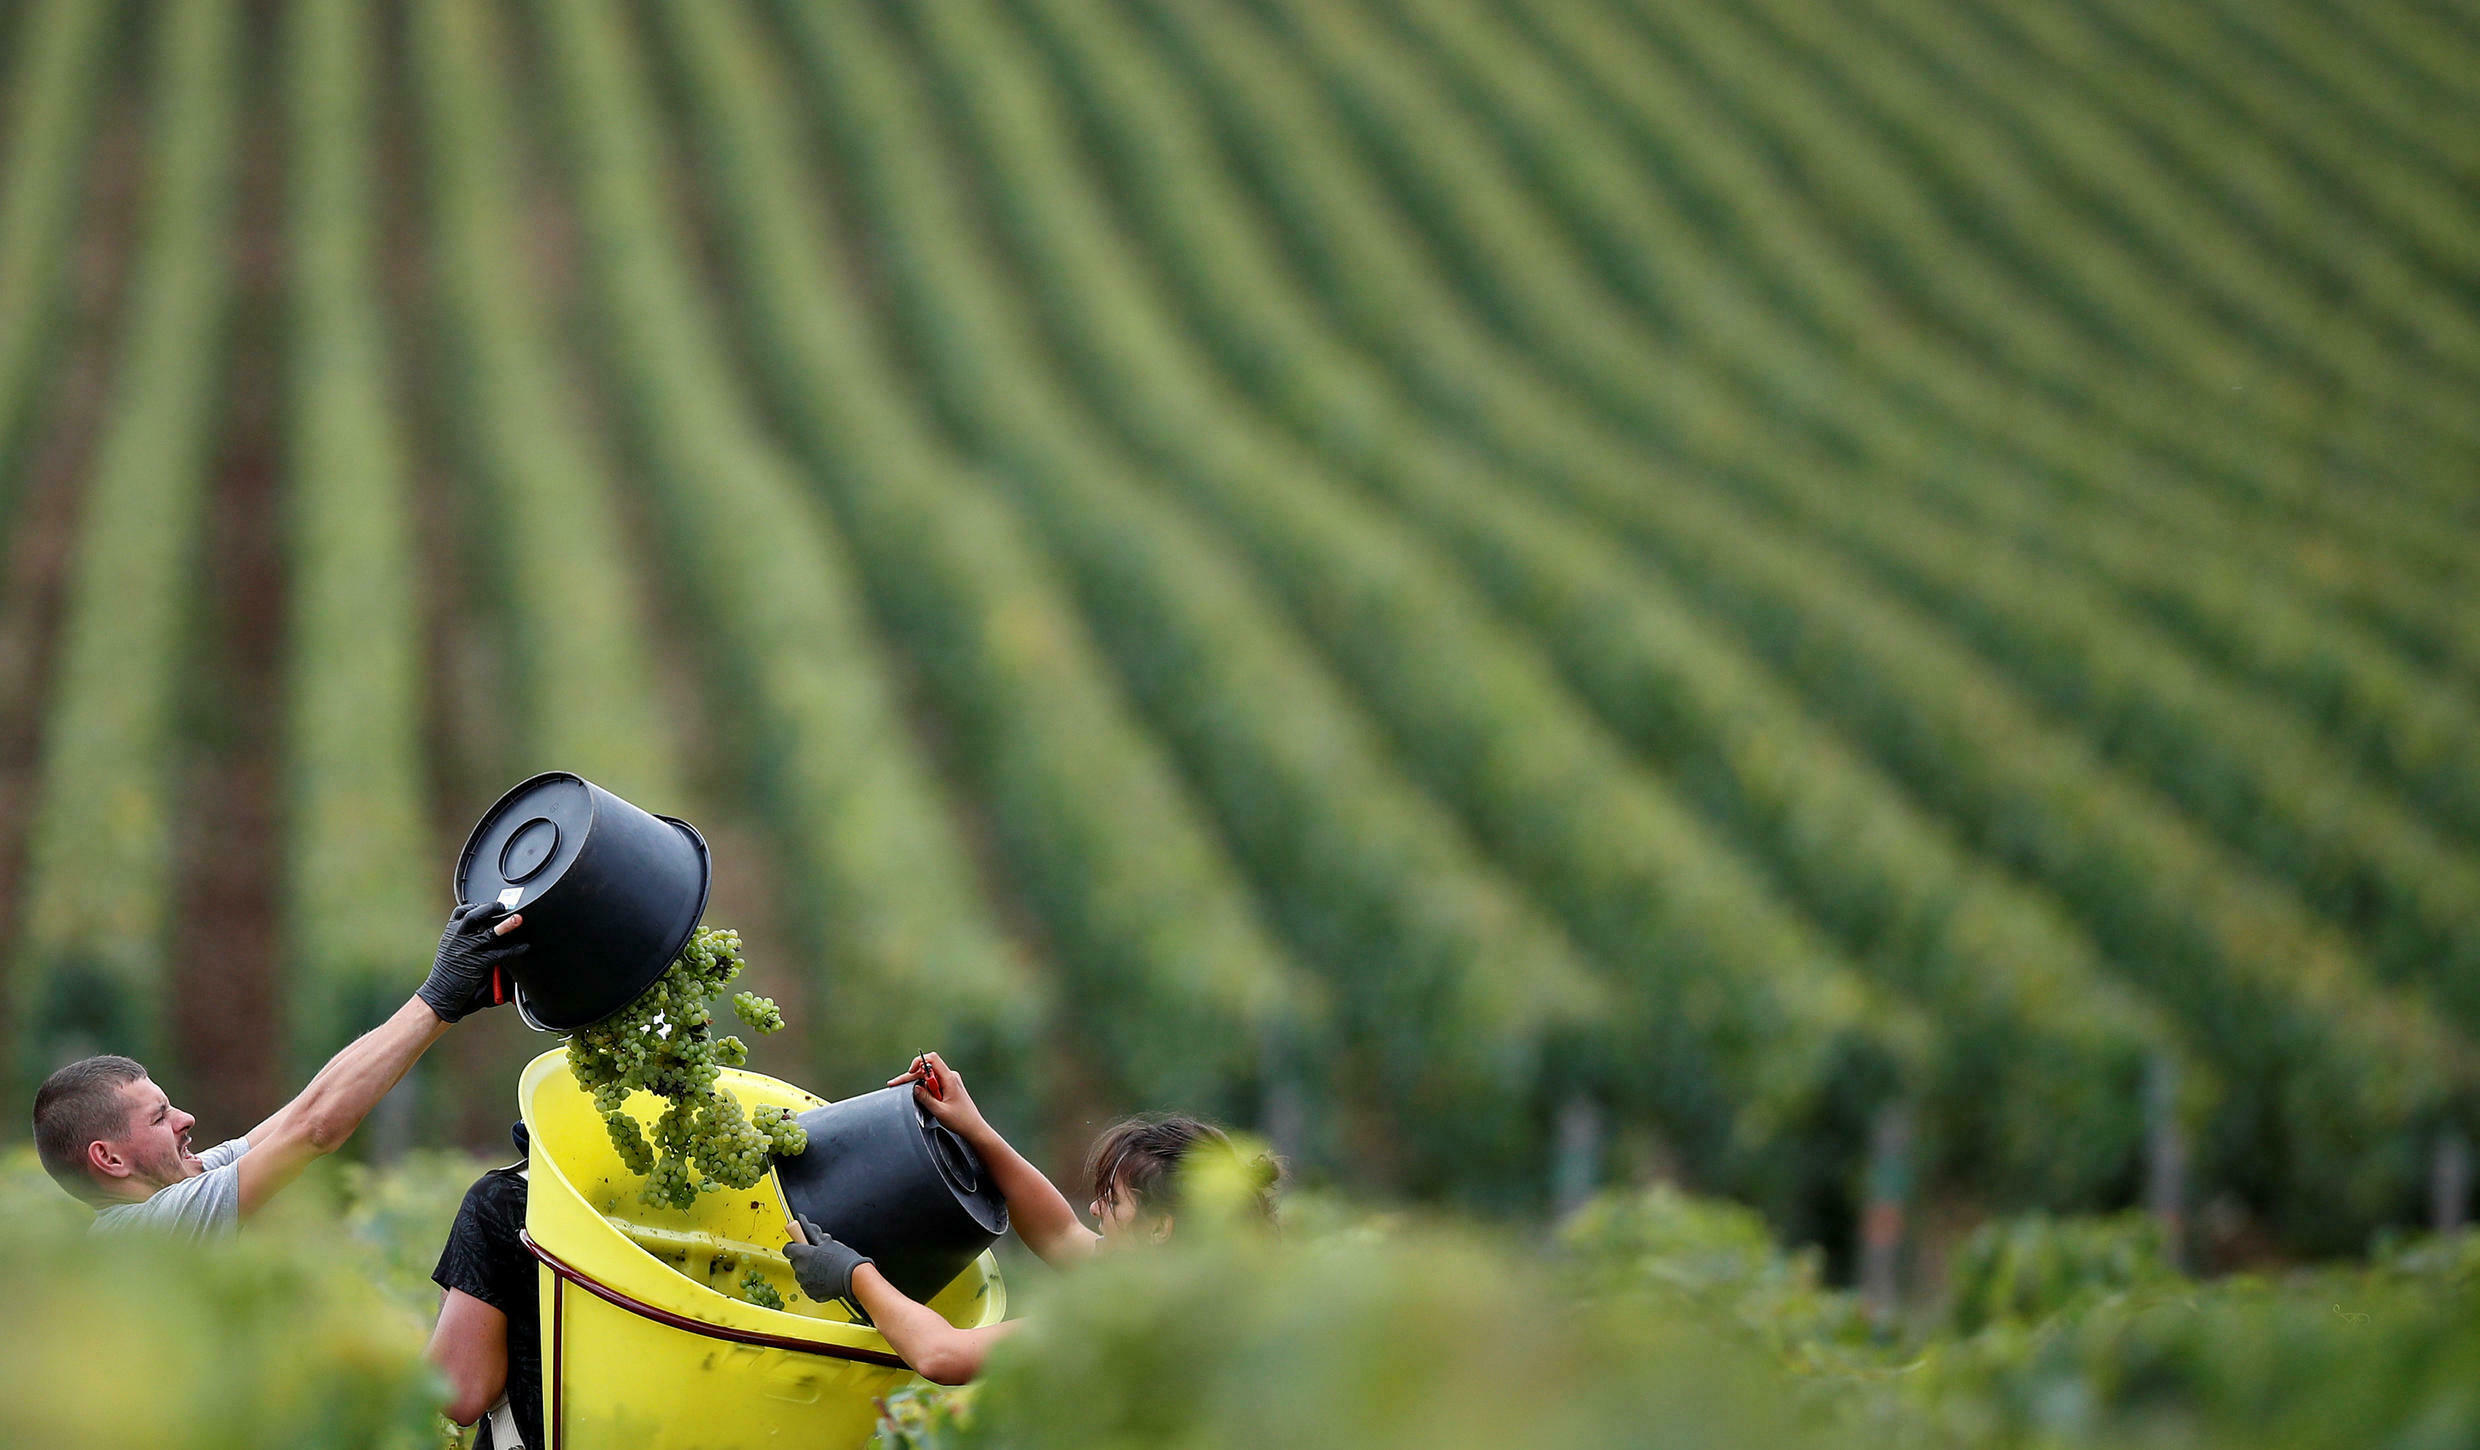 Three vineyards have had grapes stolen in the Bordeaux region since mid-September 2017.